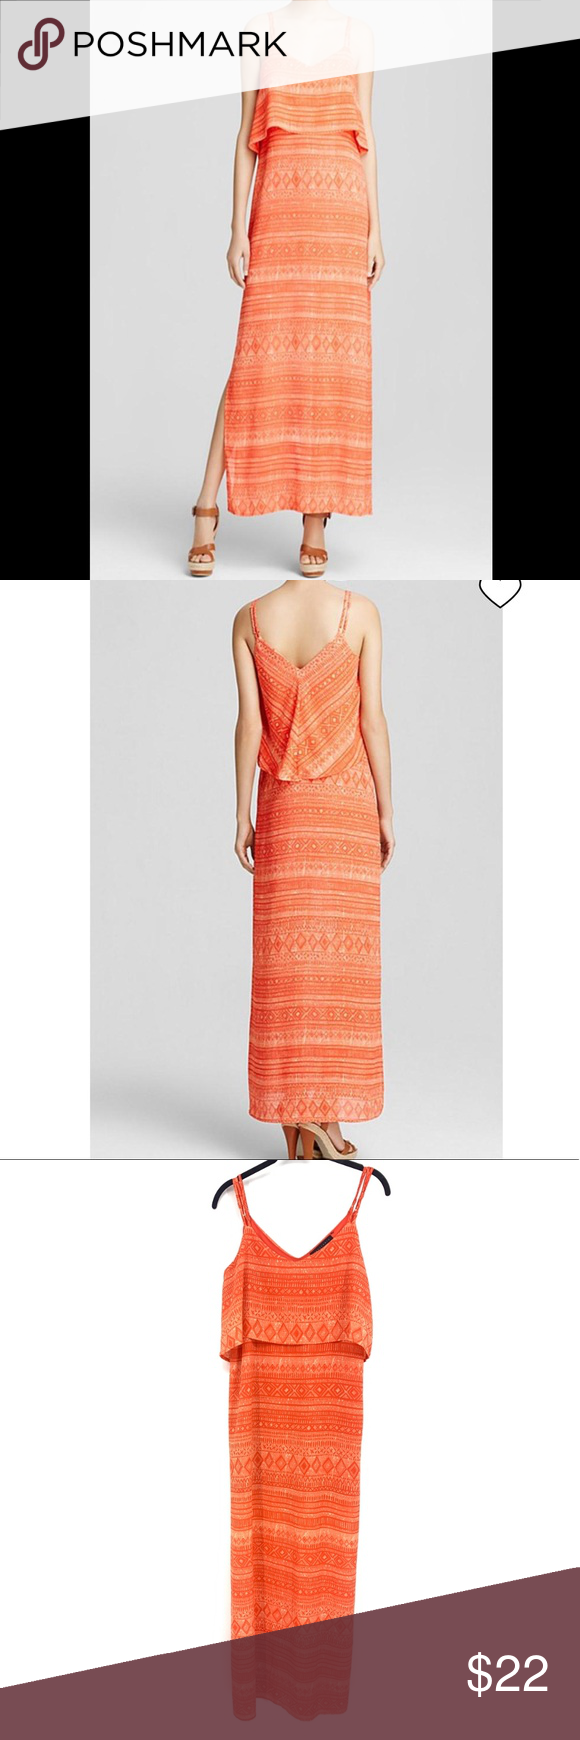 Sanctuary Orange Print Maxi Dress Geometric print maxi dress featuring a tiered ... 3